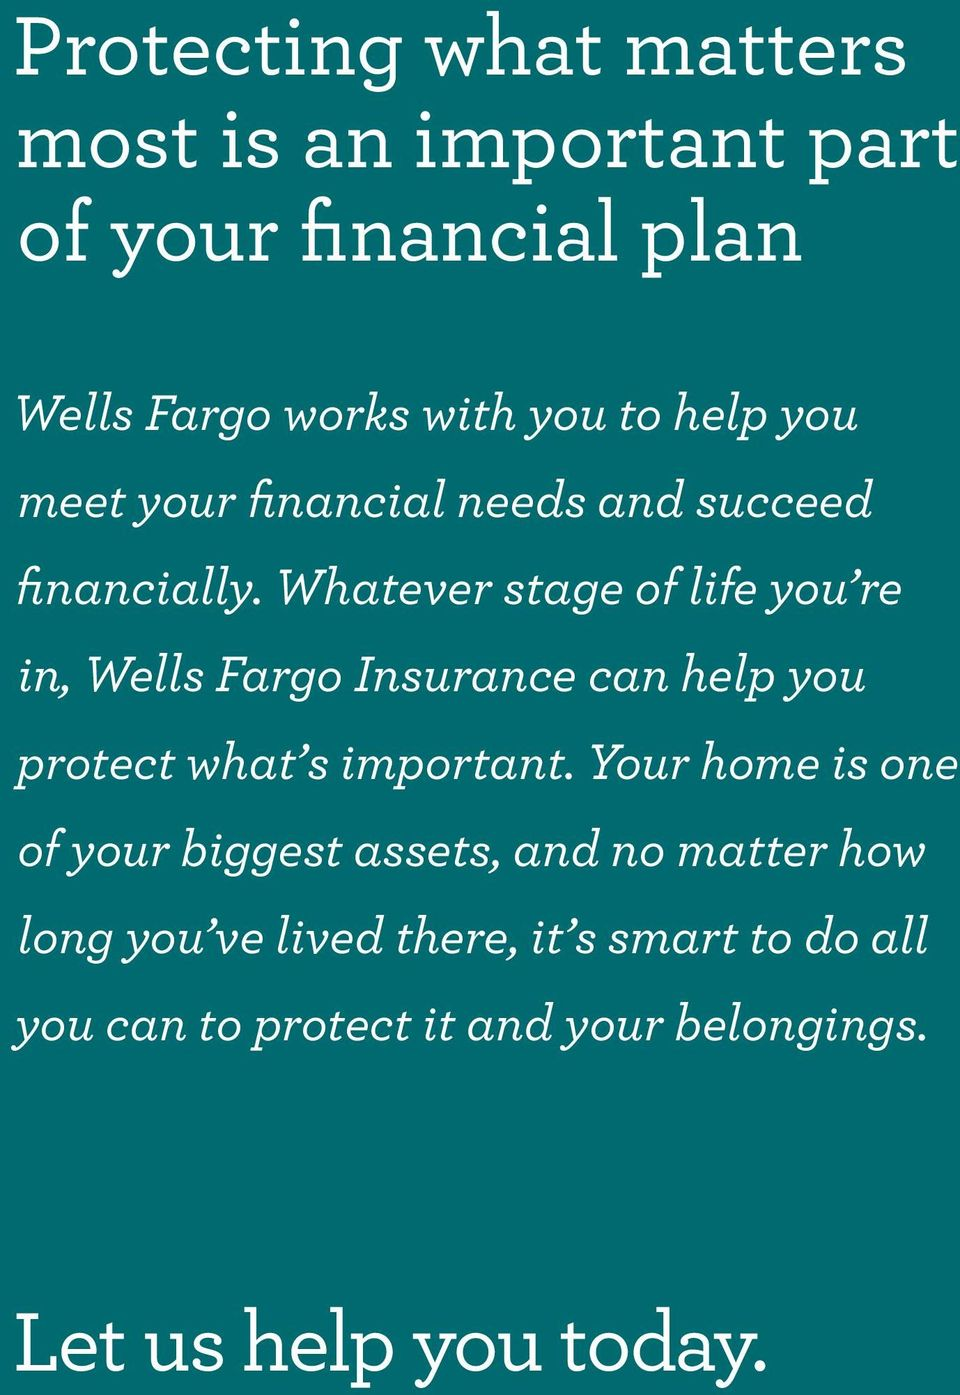 Whatever stage of life you re in, Wells Fargo Insurance can help you protect what s important.